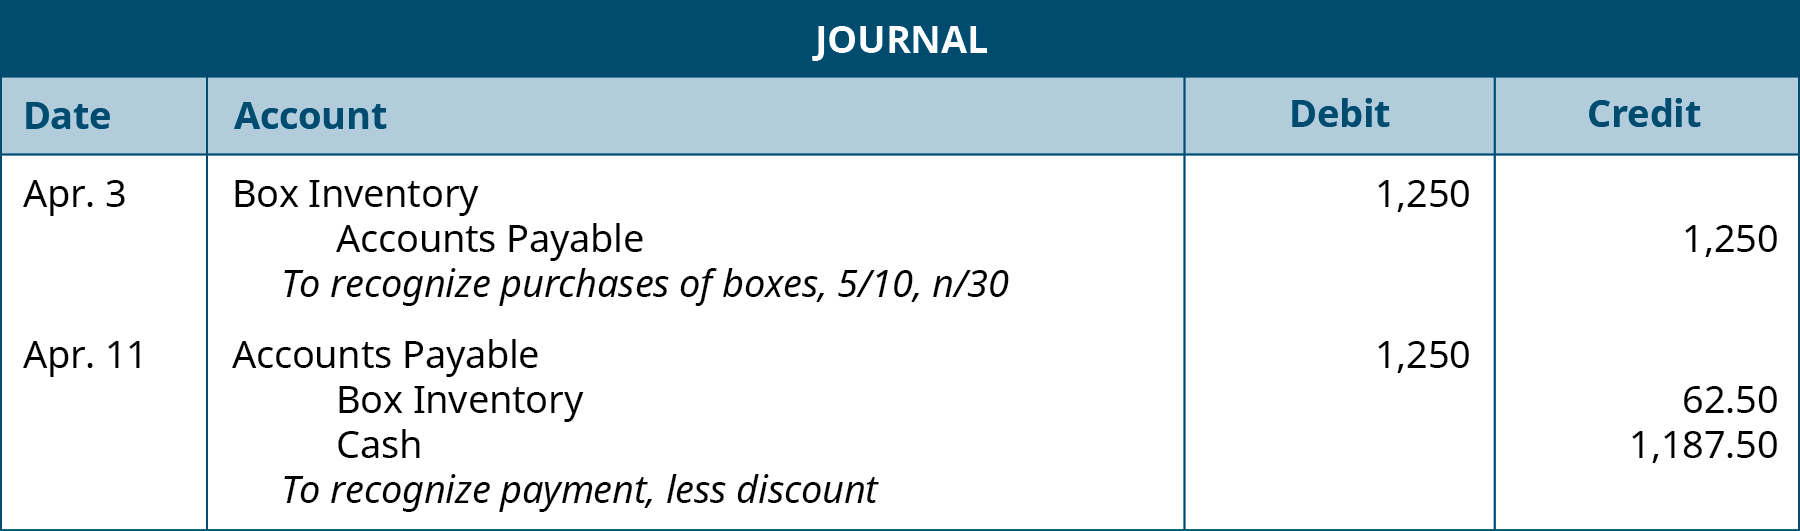 """The first journal entry is made on April 3 and shows a Debit to Box inventory for $1,250, and a credit to Accounts payable for $1,250 with the note """"To recognize purchases of boxes, 5 / 10, n / 30."""" The second journal entry is made on April 11, and shows a Debit to Accounts payable for $1,250, a credit to Box inventory for $62.50 and a credit to Cash for $1,187.50 with the note """"To recognize payment, less discount."""""""